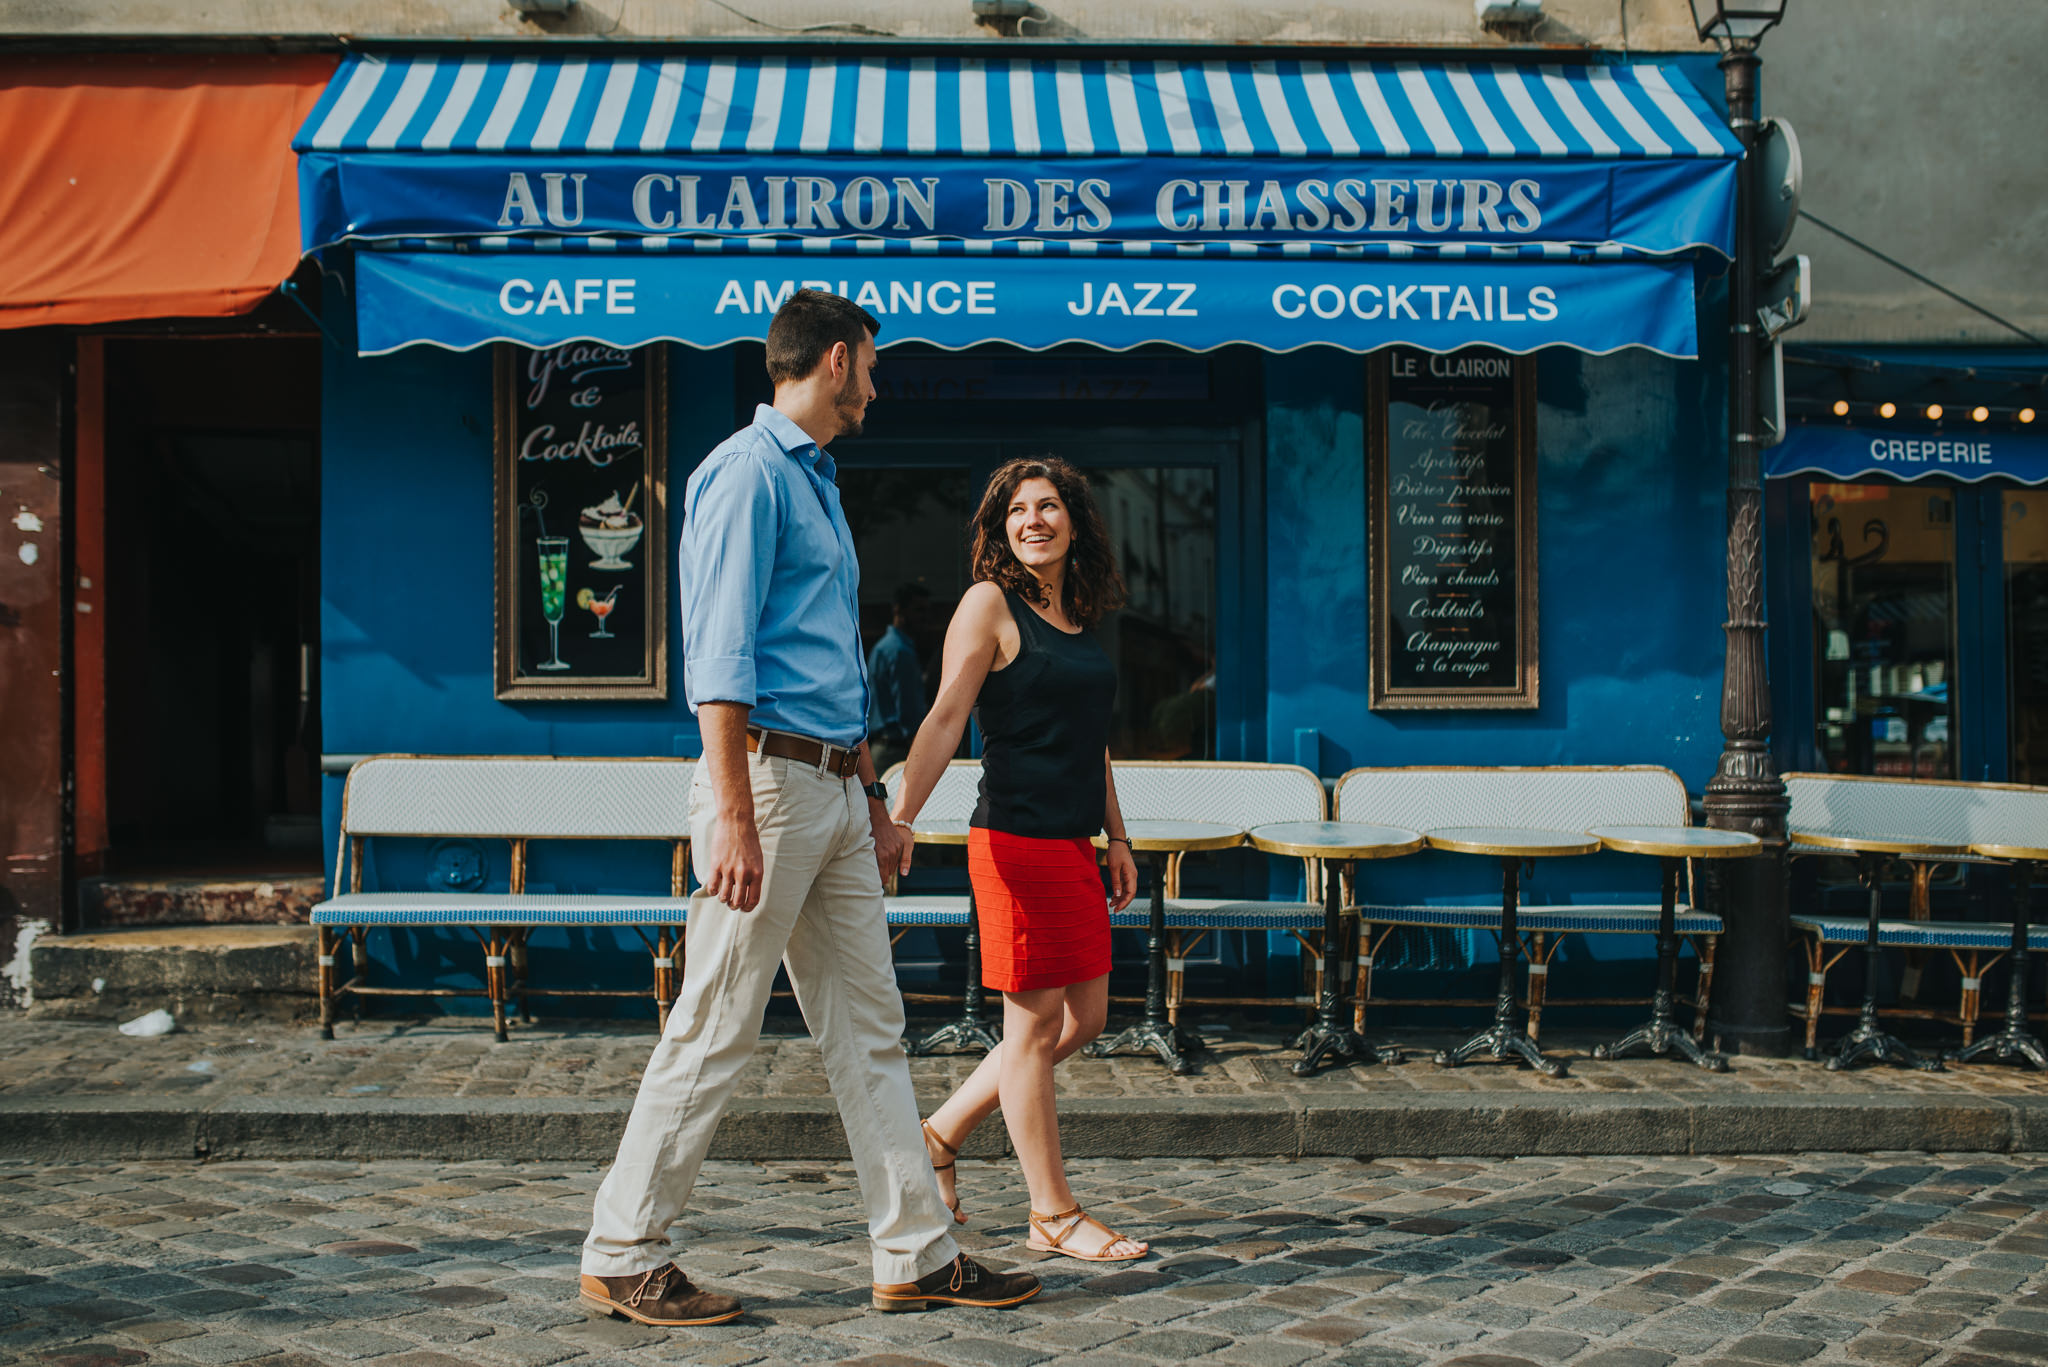 Paris pre-wedding shoot: Man and woman in love walking by one of the cafes in Montmartre.